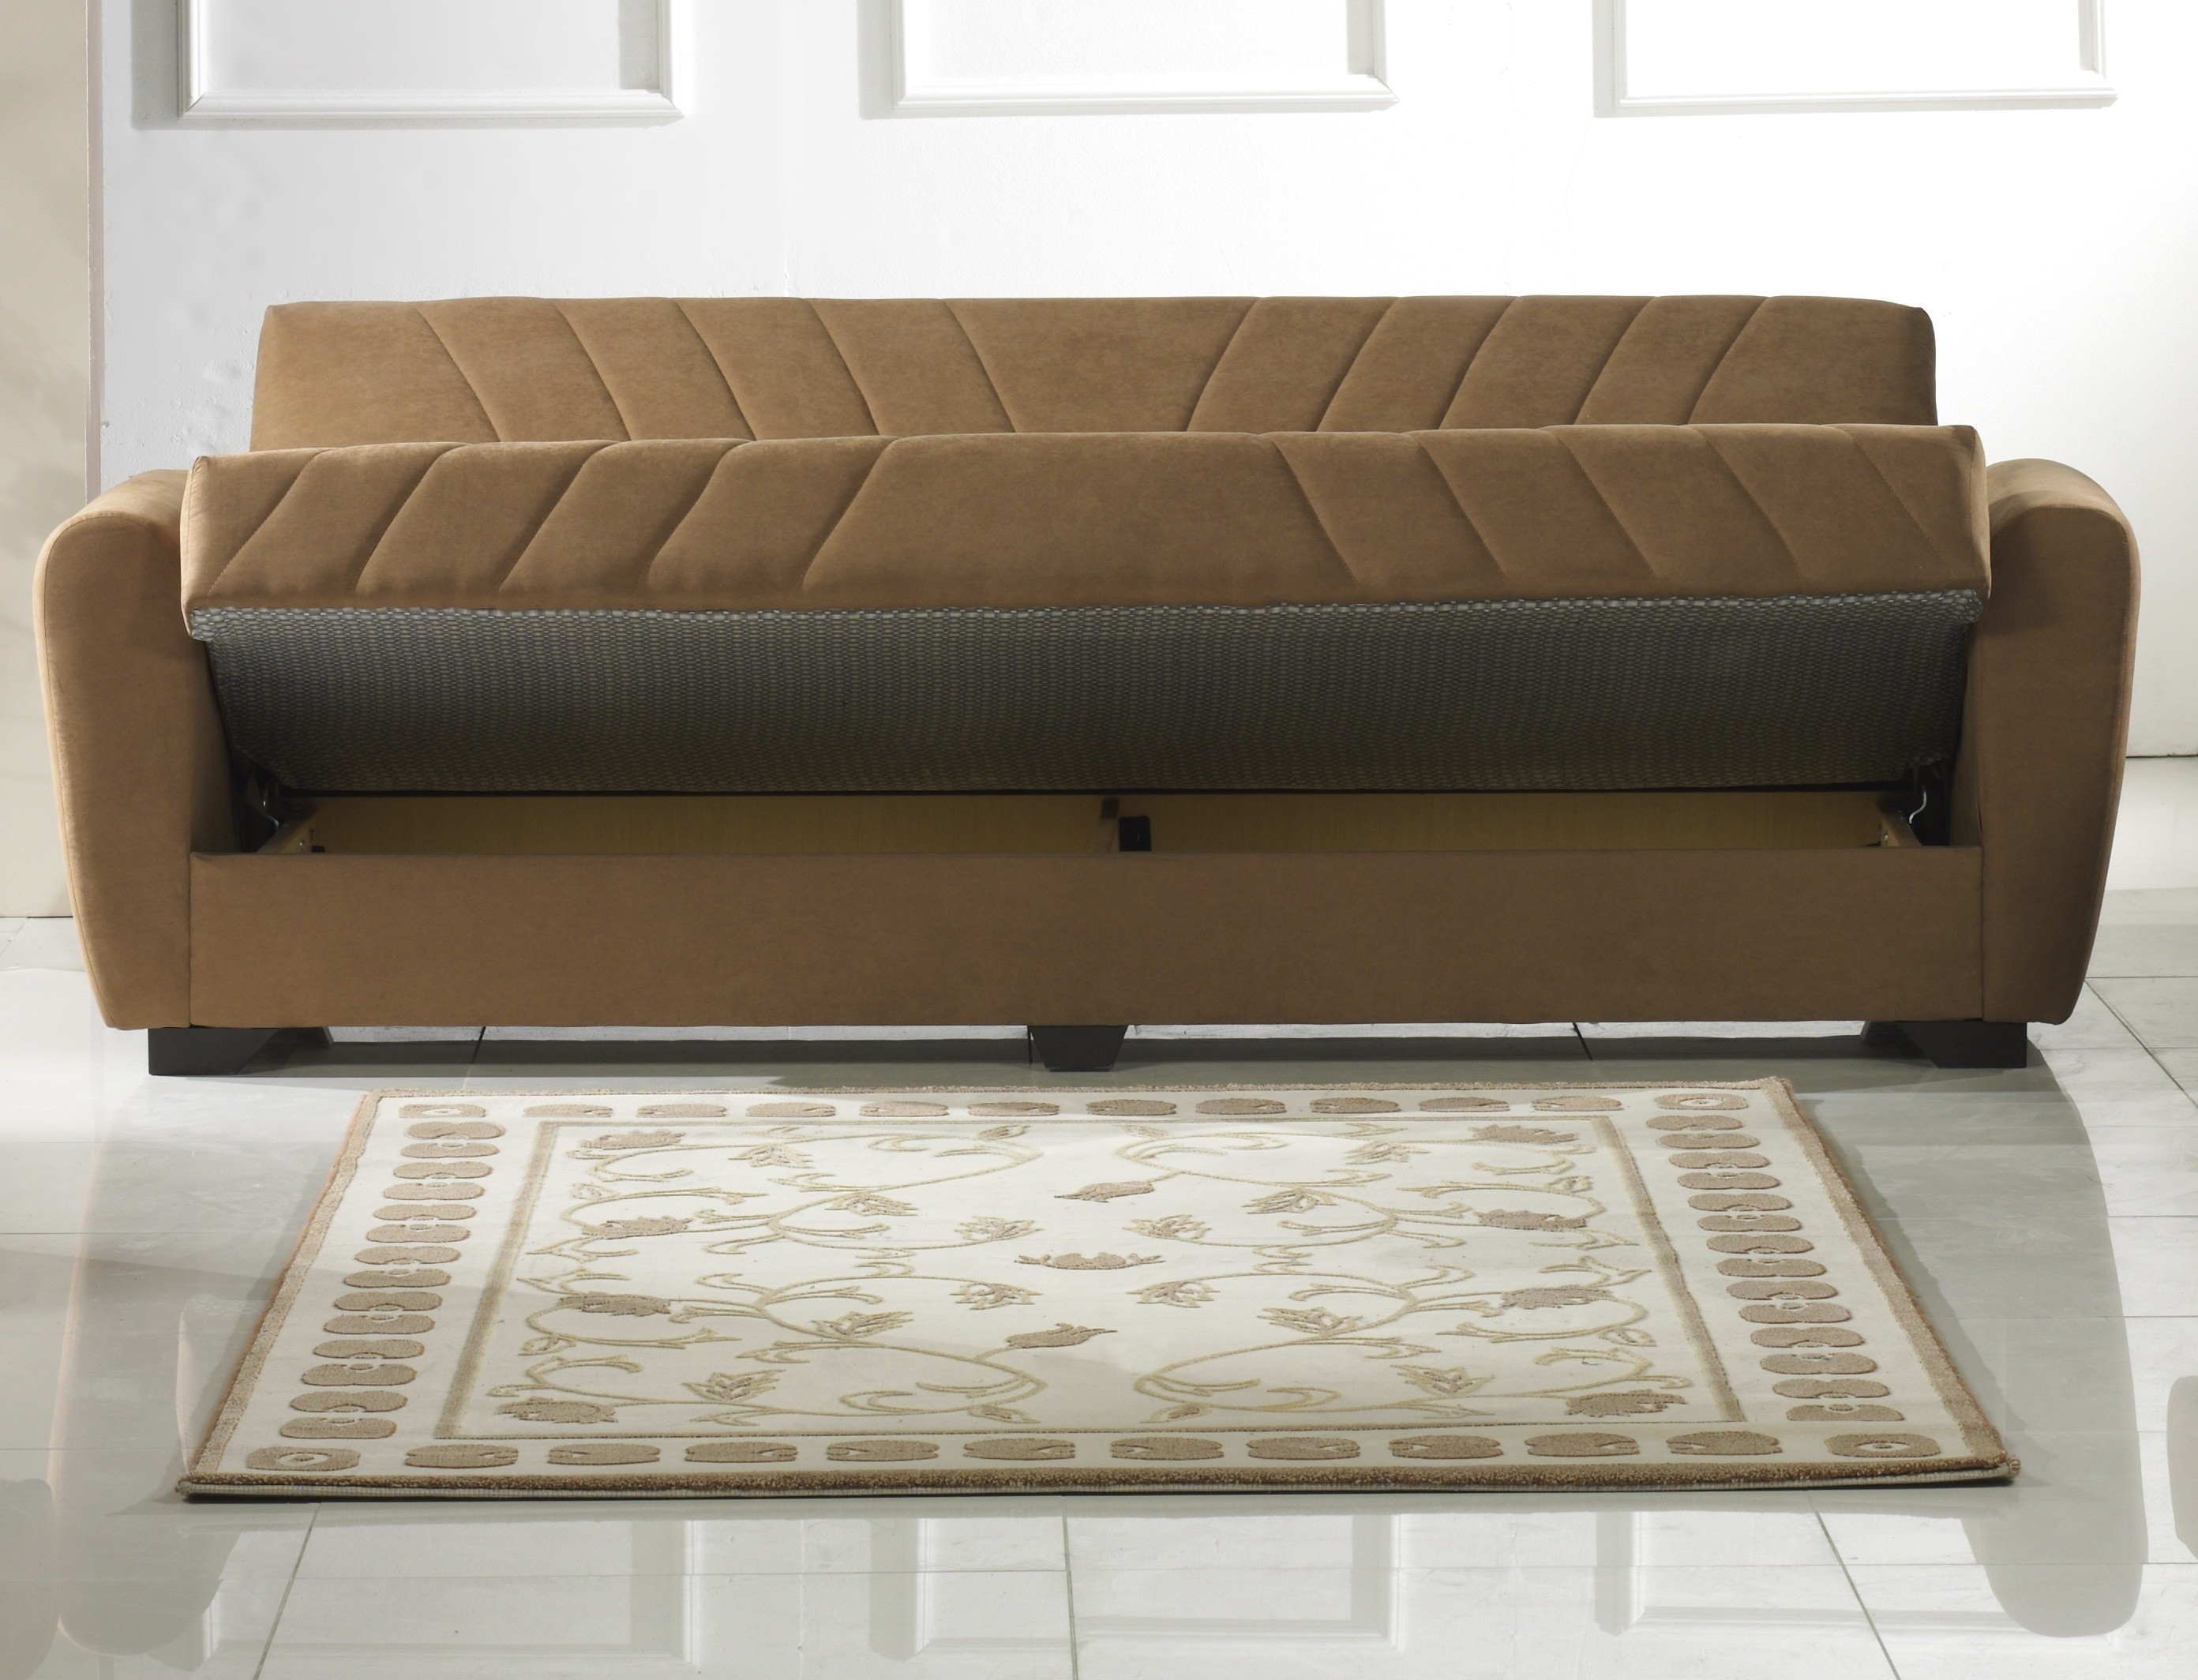 New Sectional Sofa Tampa – Buildsimplehome For Tampa Sectional Sofas (View 9 of 10)